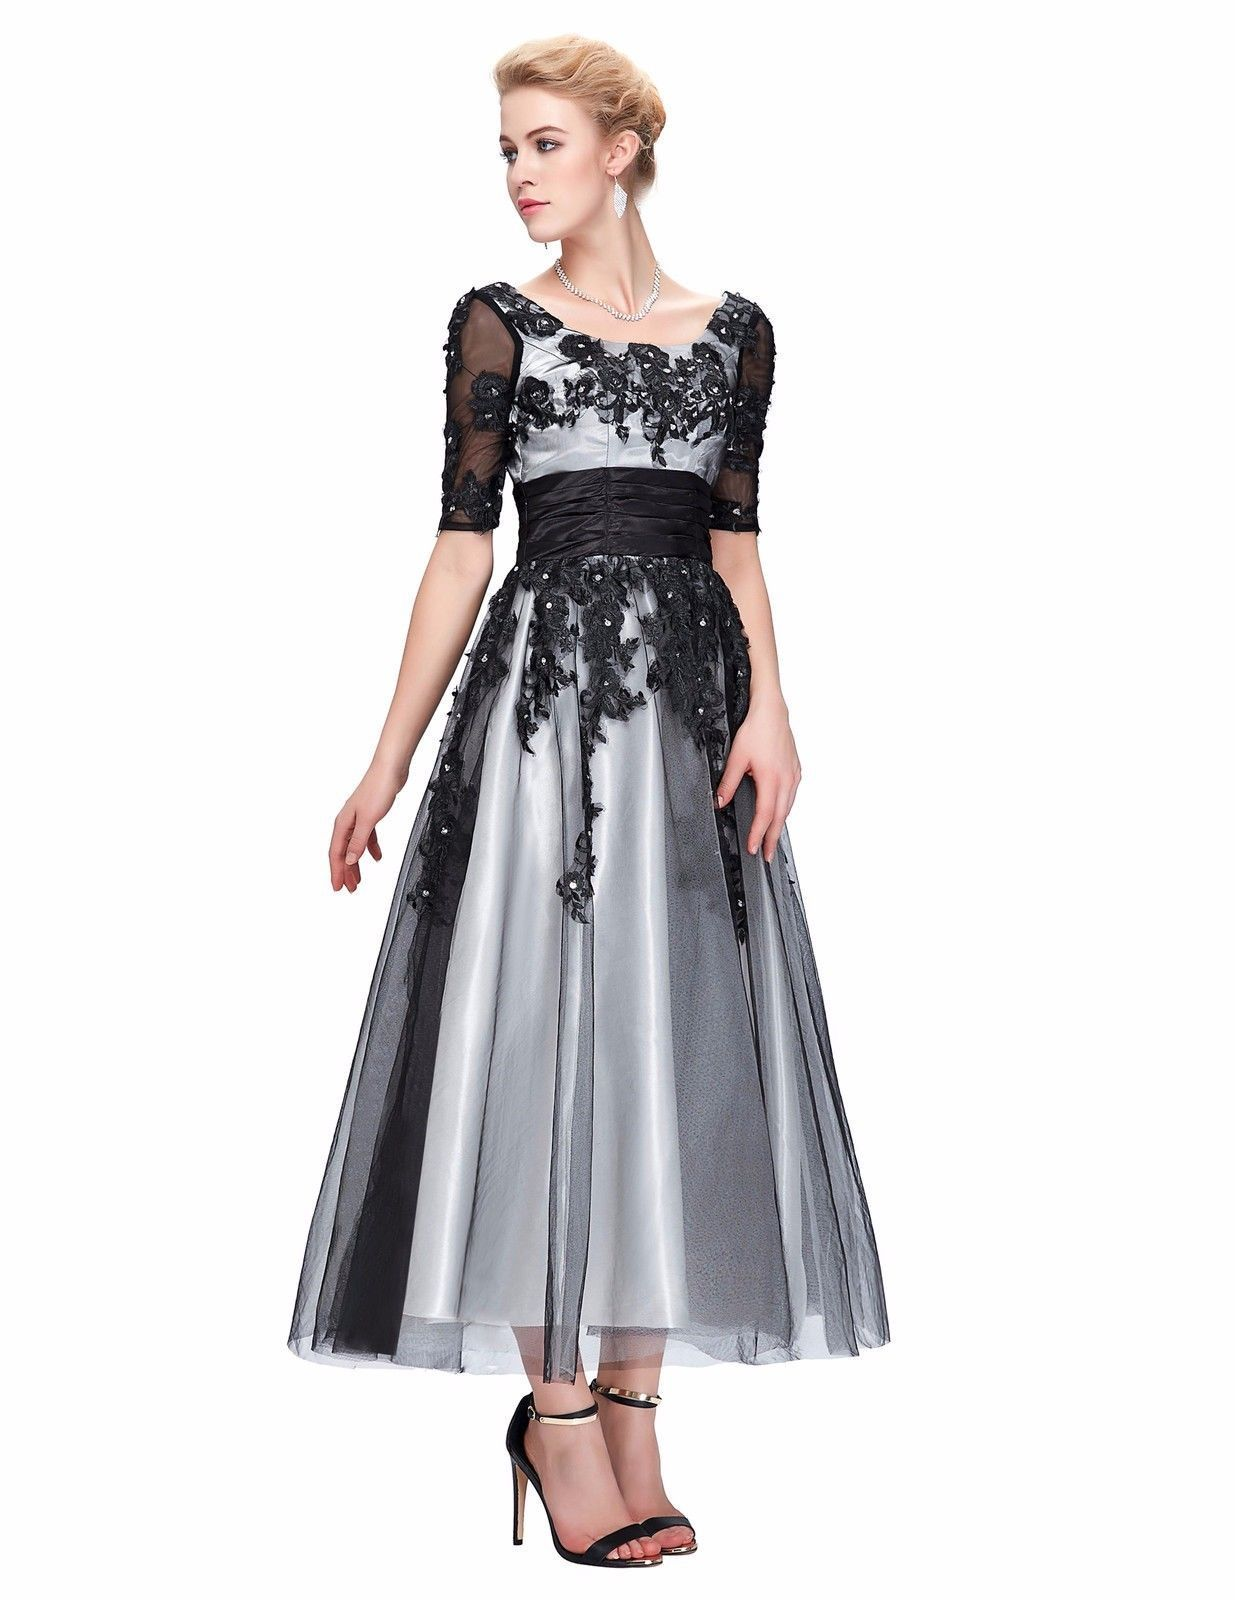 Awesome cocktail prom wedding gown long vintage formal party evening